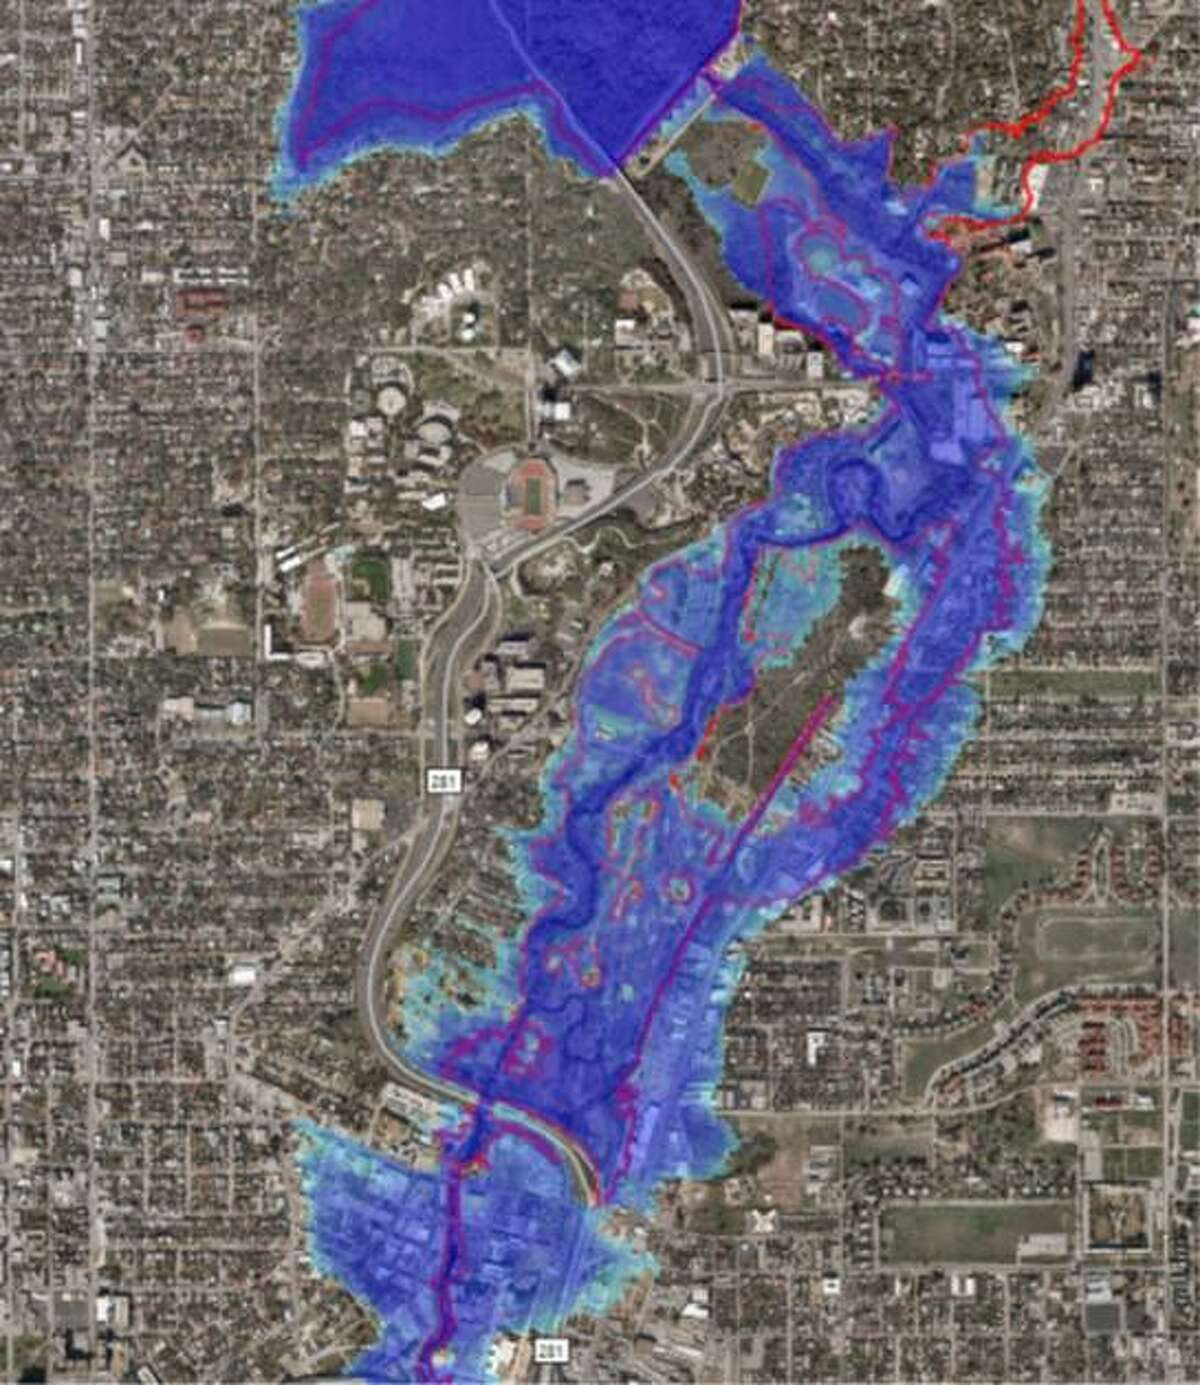 Screenshots of flooding simulations show how some of San Antonio's creeks and rivers would rise if the city were hit by a Hurricane Harvey-level storm. Contractors for the San Antonio River Authority produced the images.